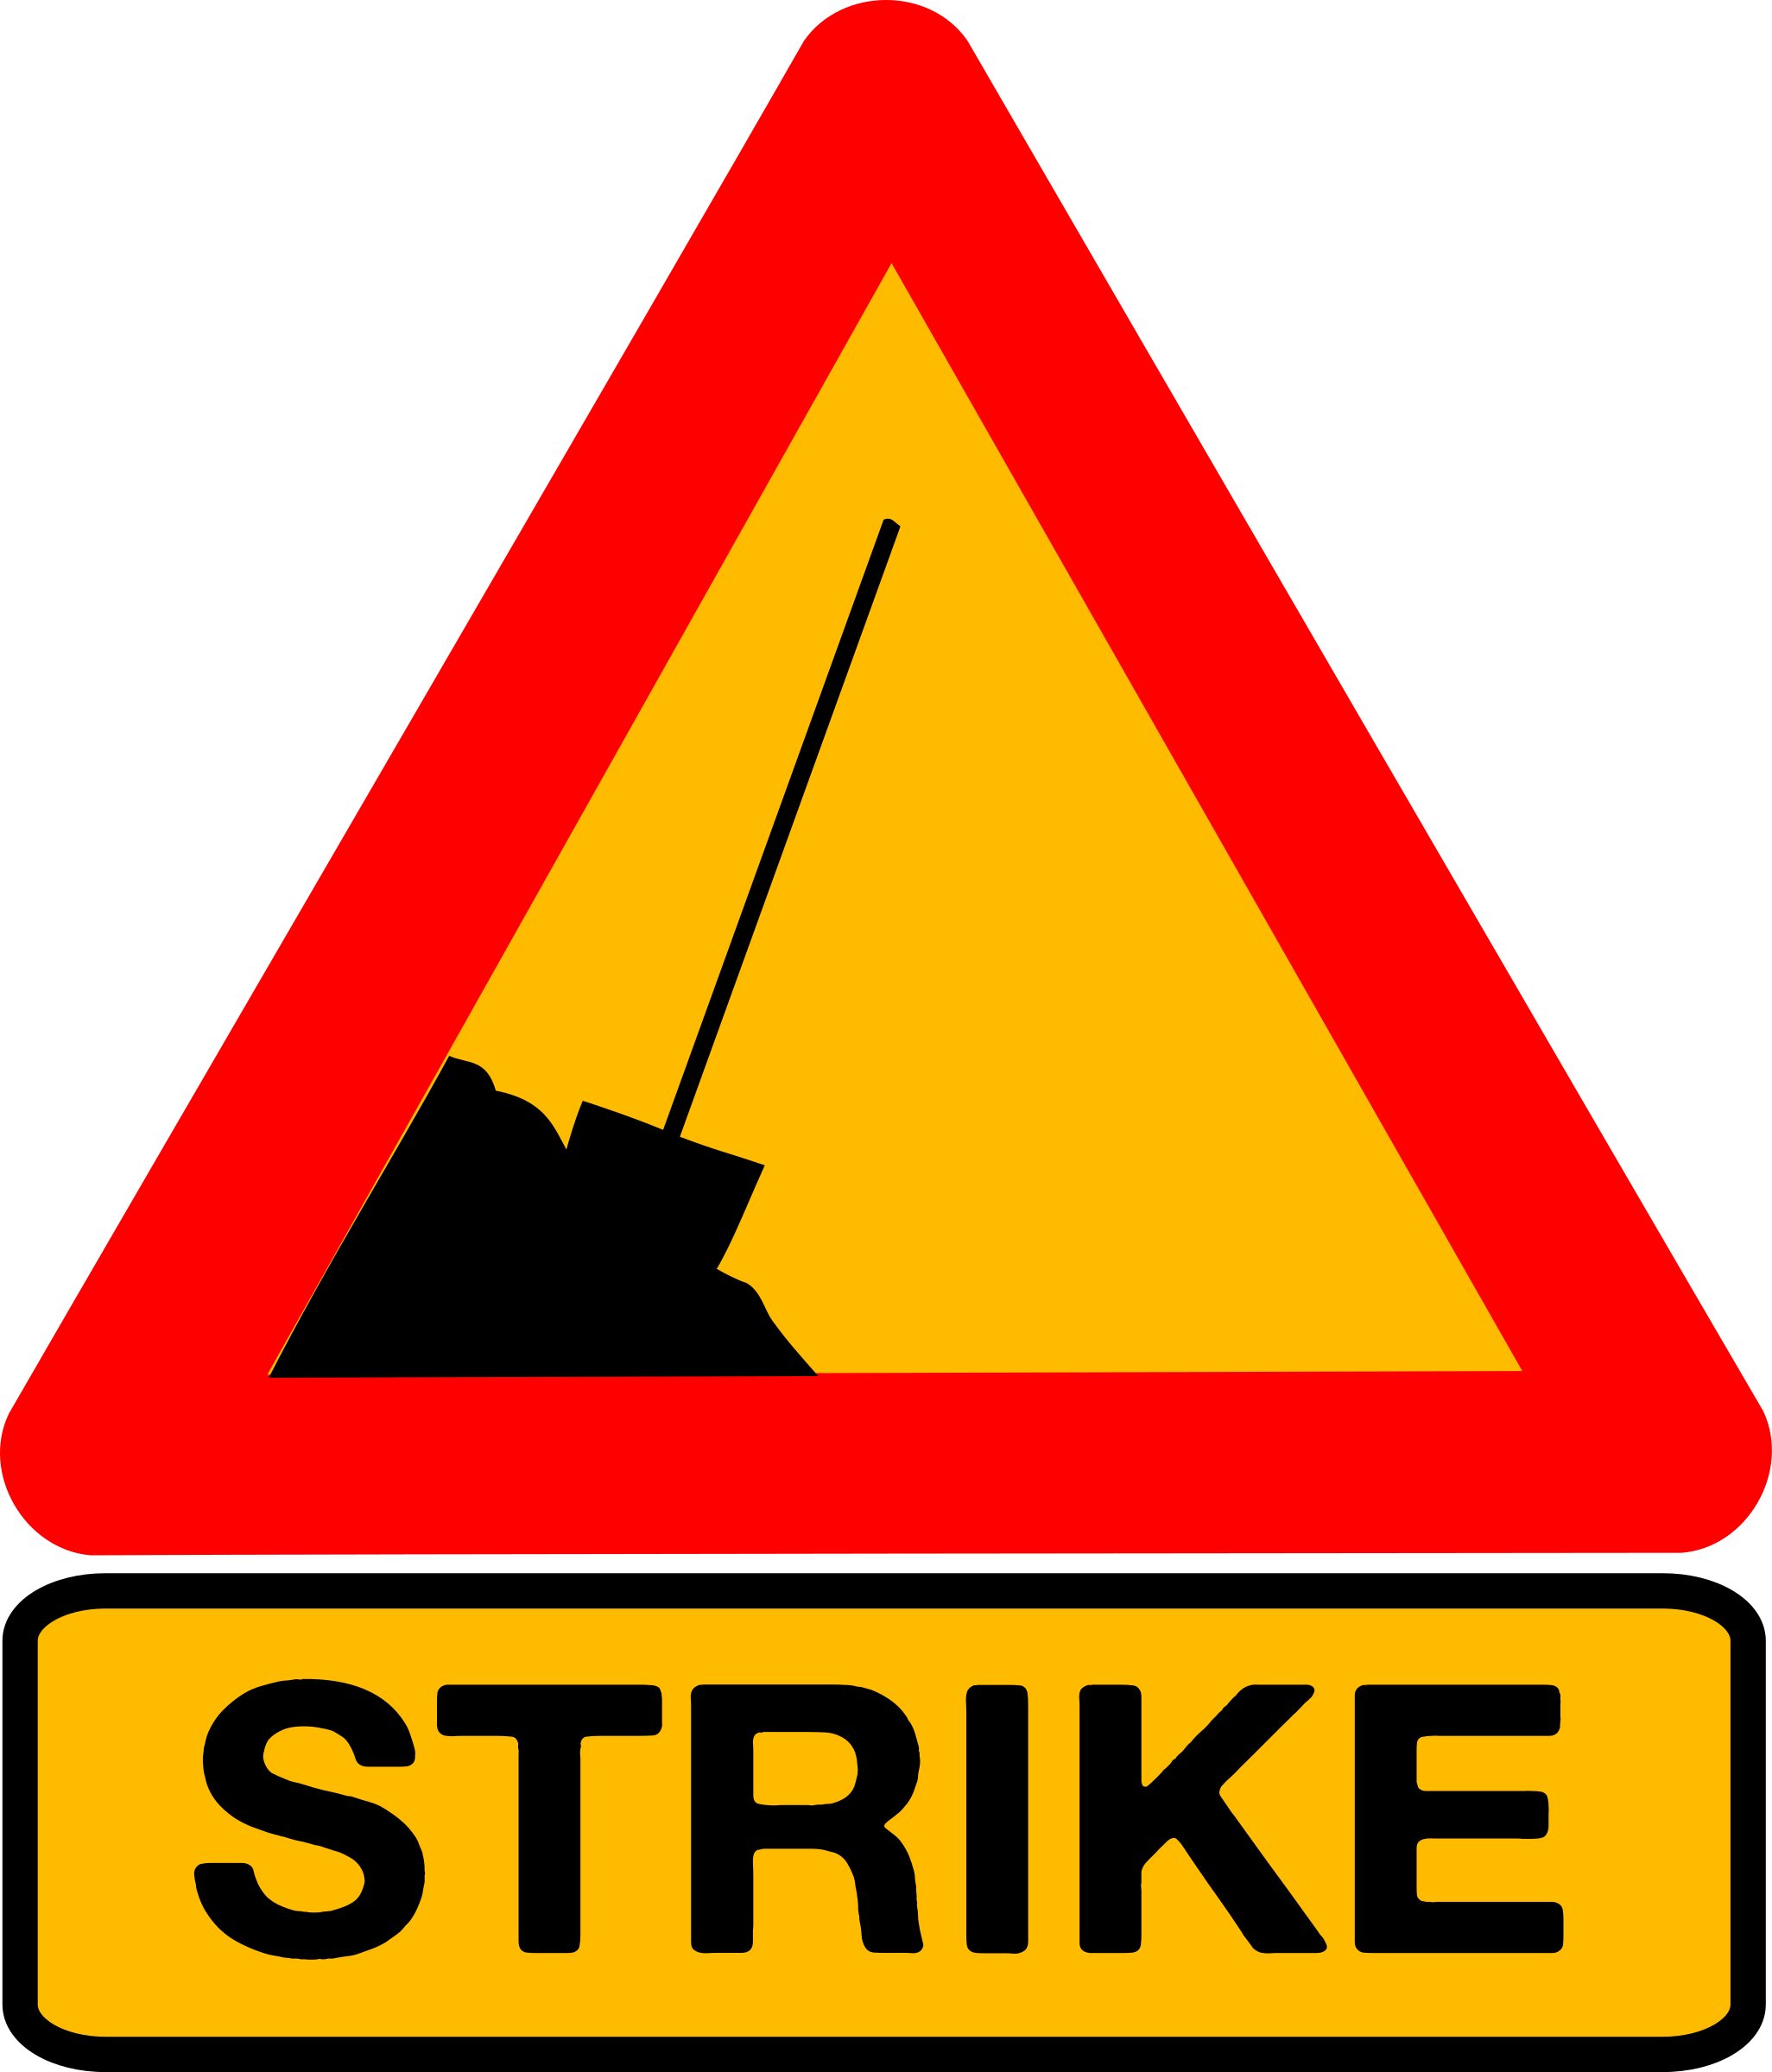 Caution strike by dominiquechappard